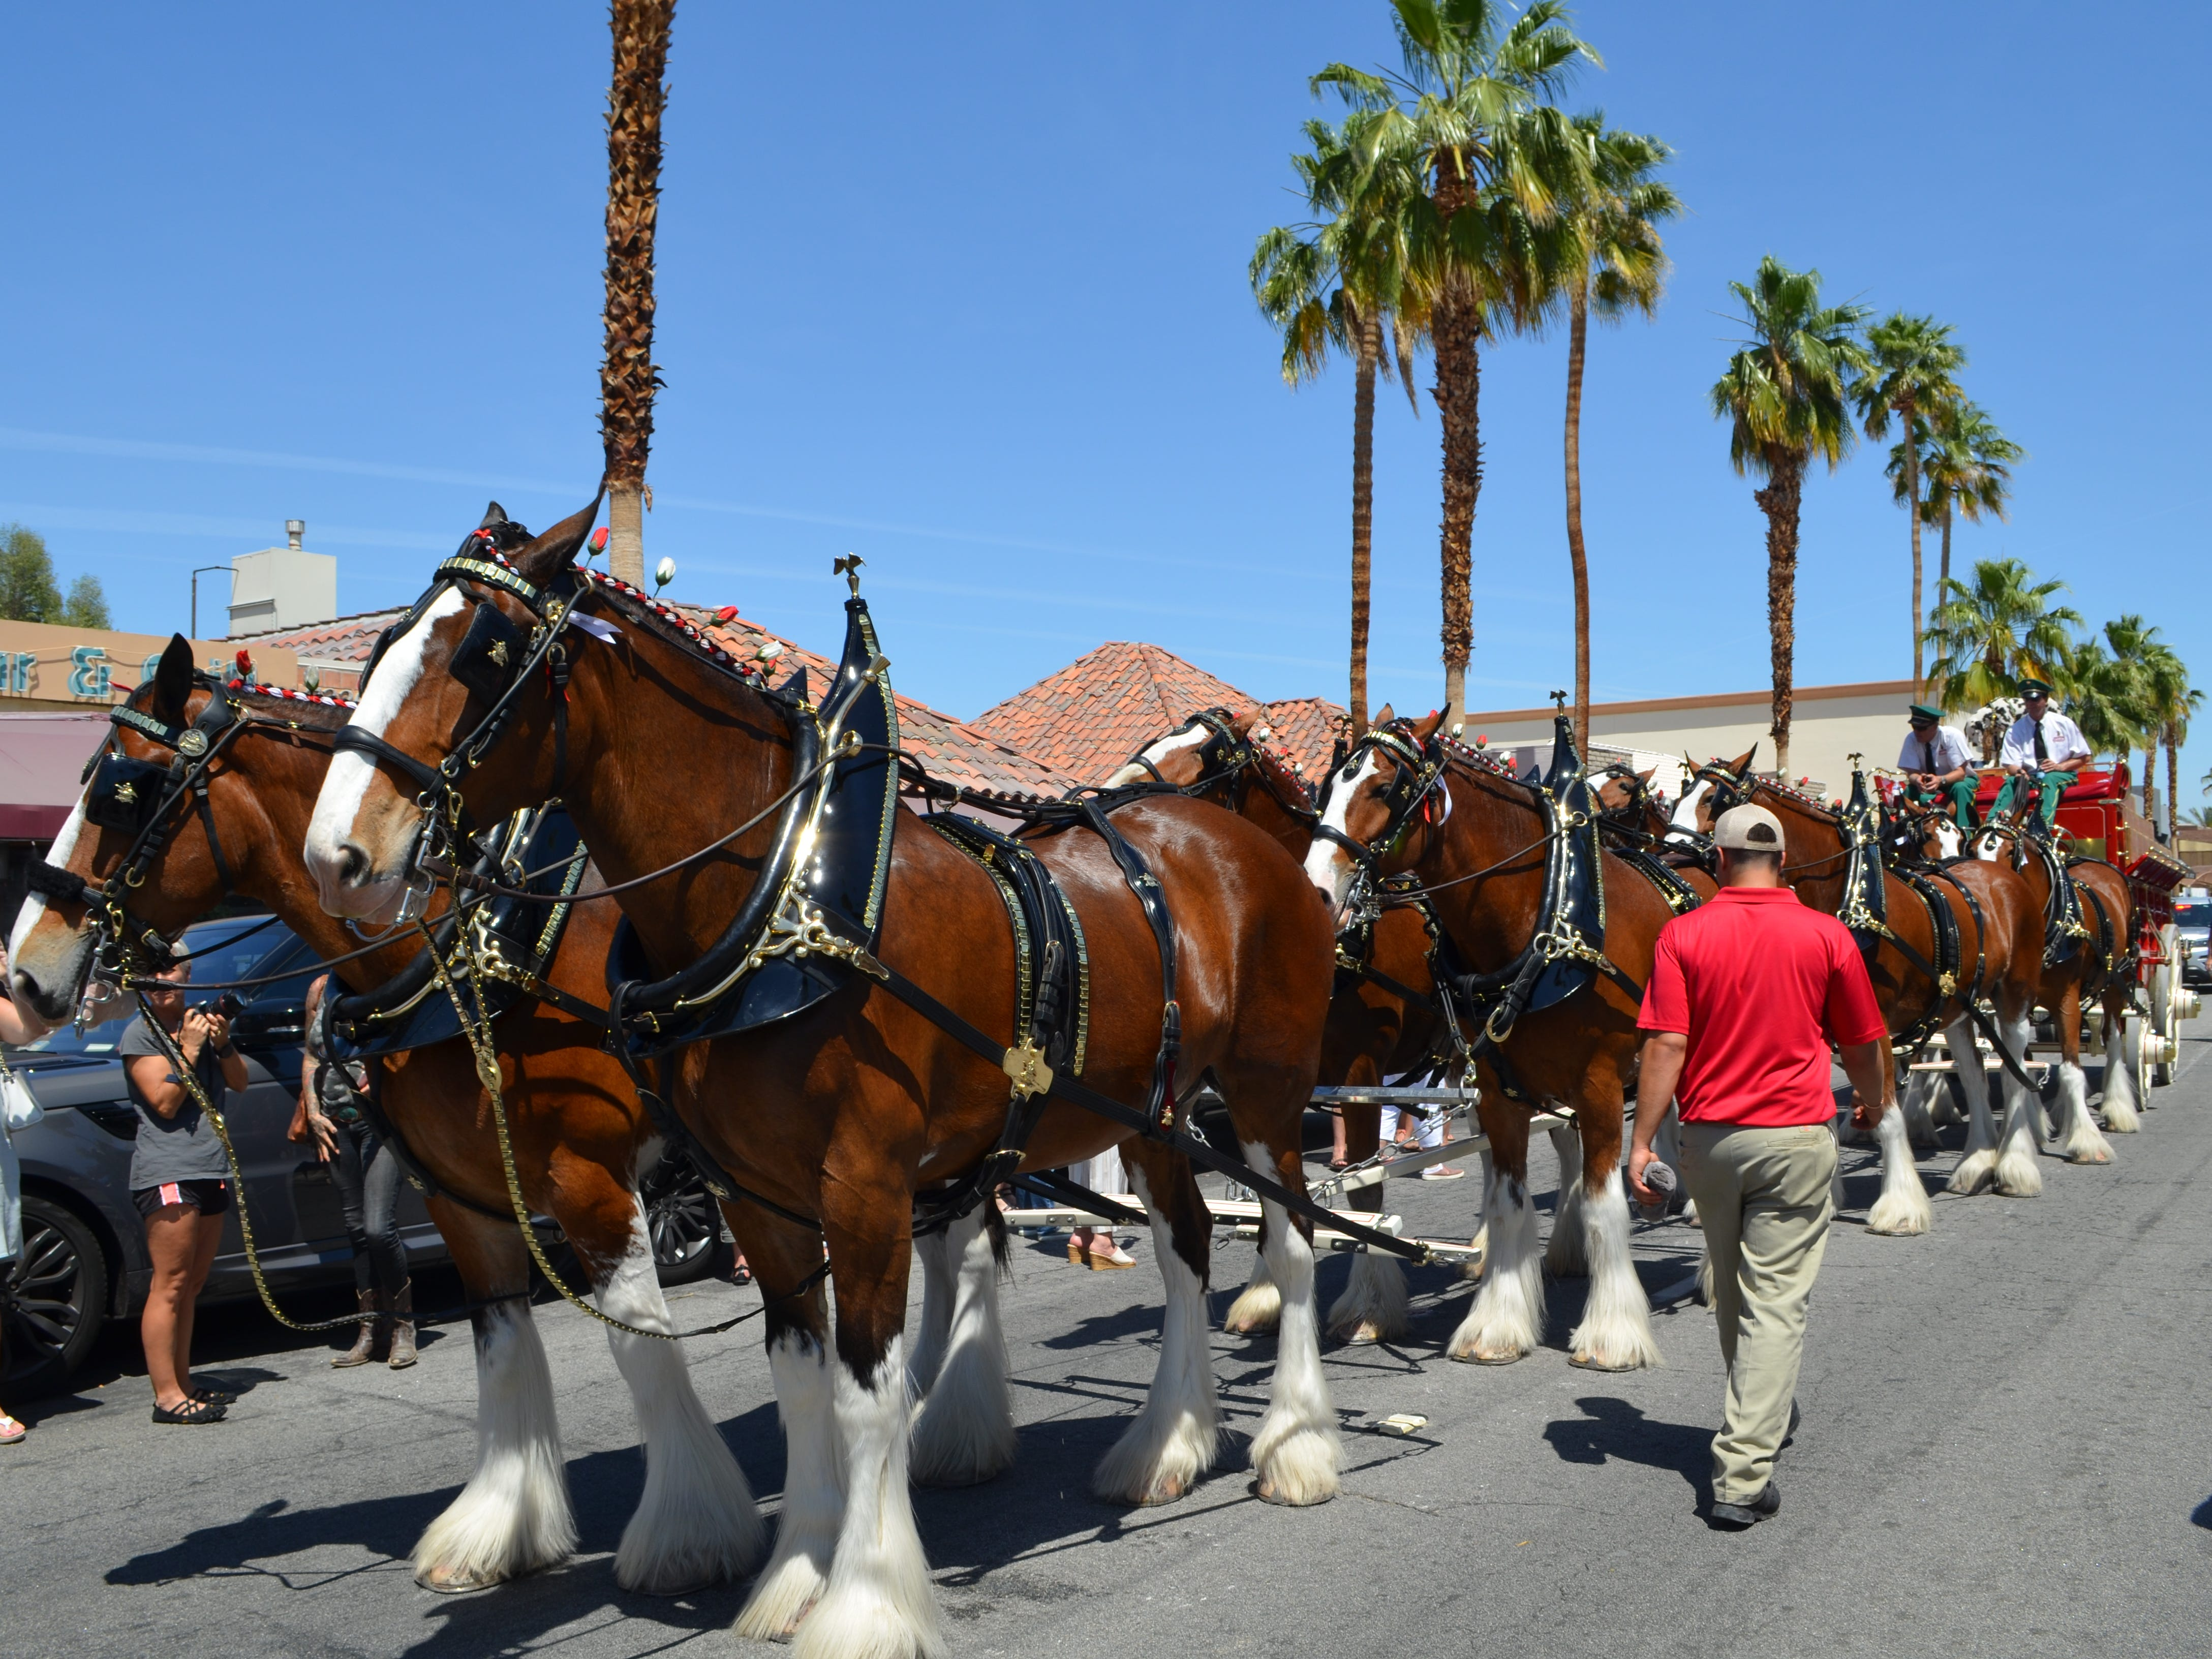 The Budweiser Clydesdales pause along El Paseo in Palm Desert, Calif., April 25, 2019.